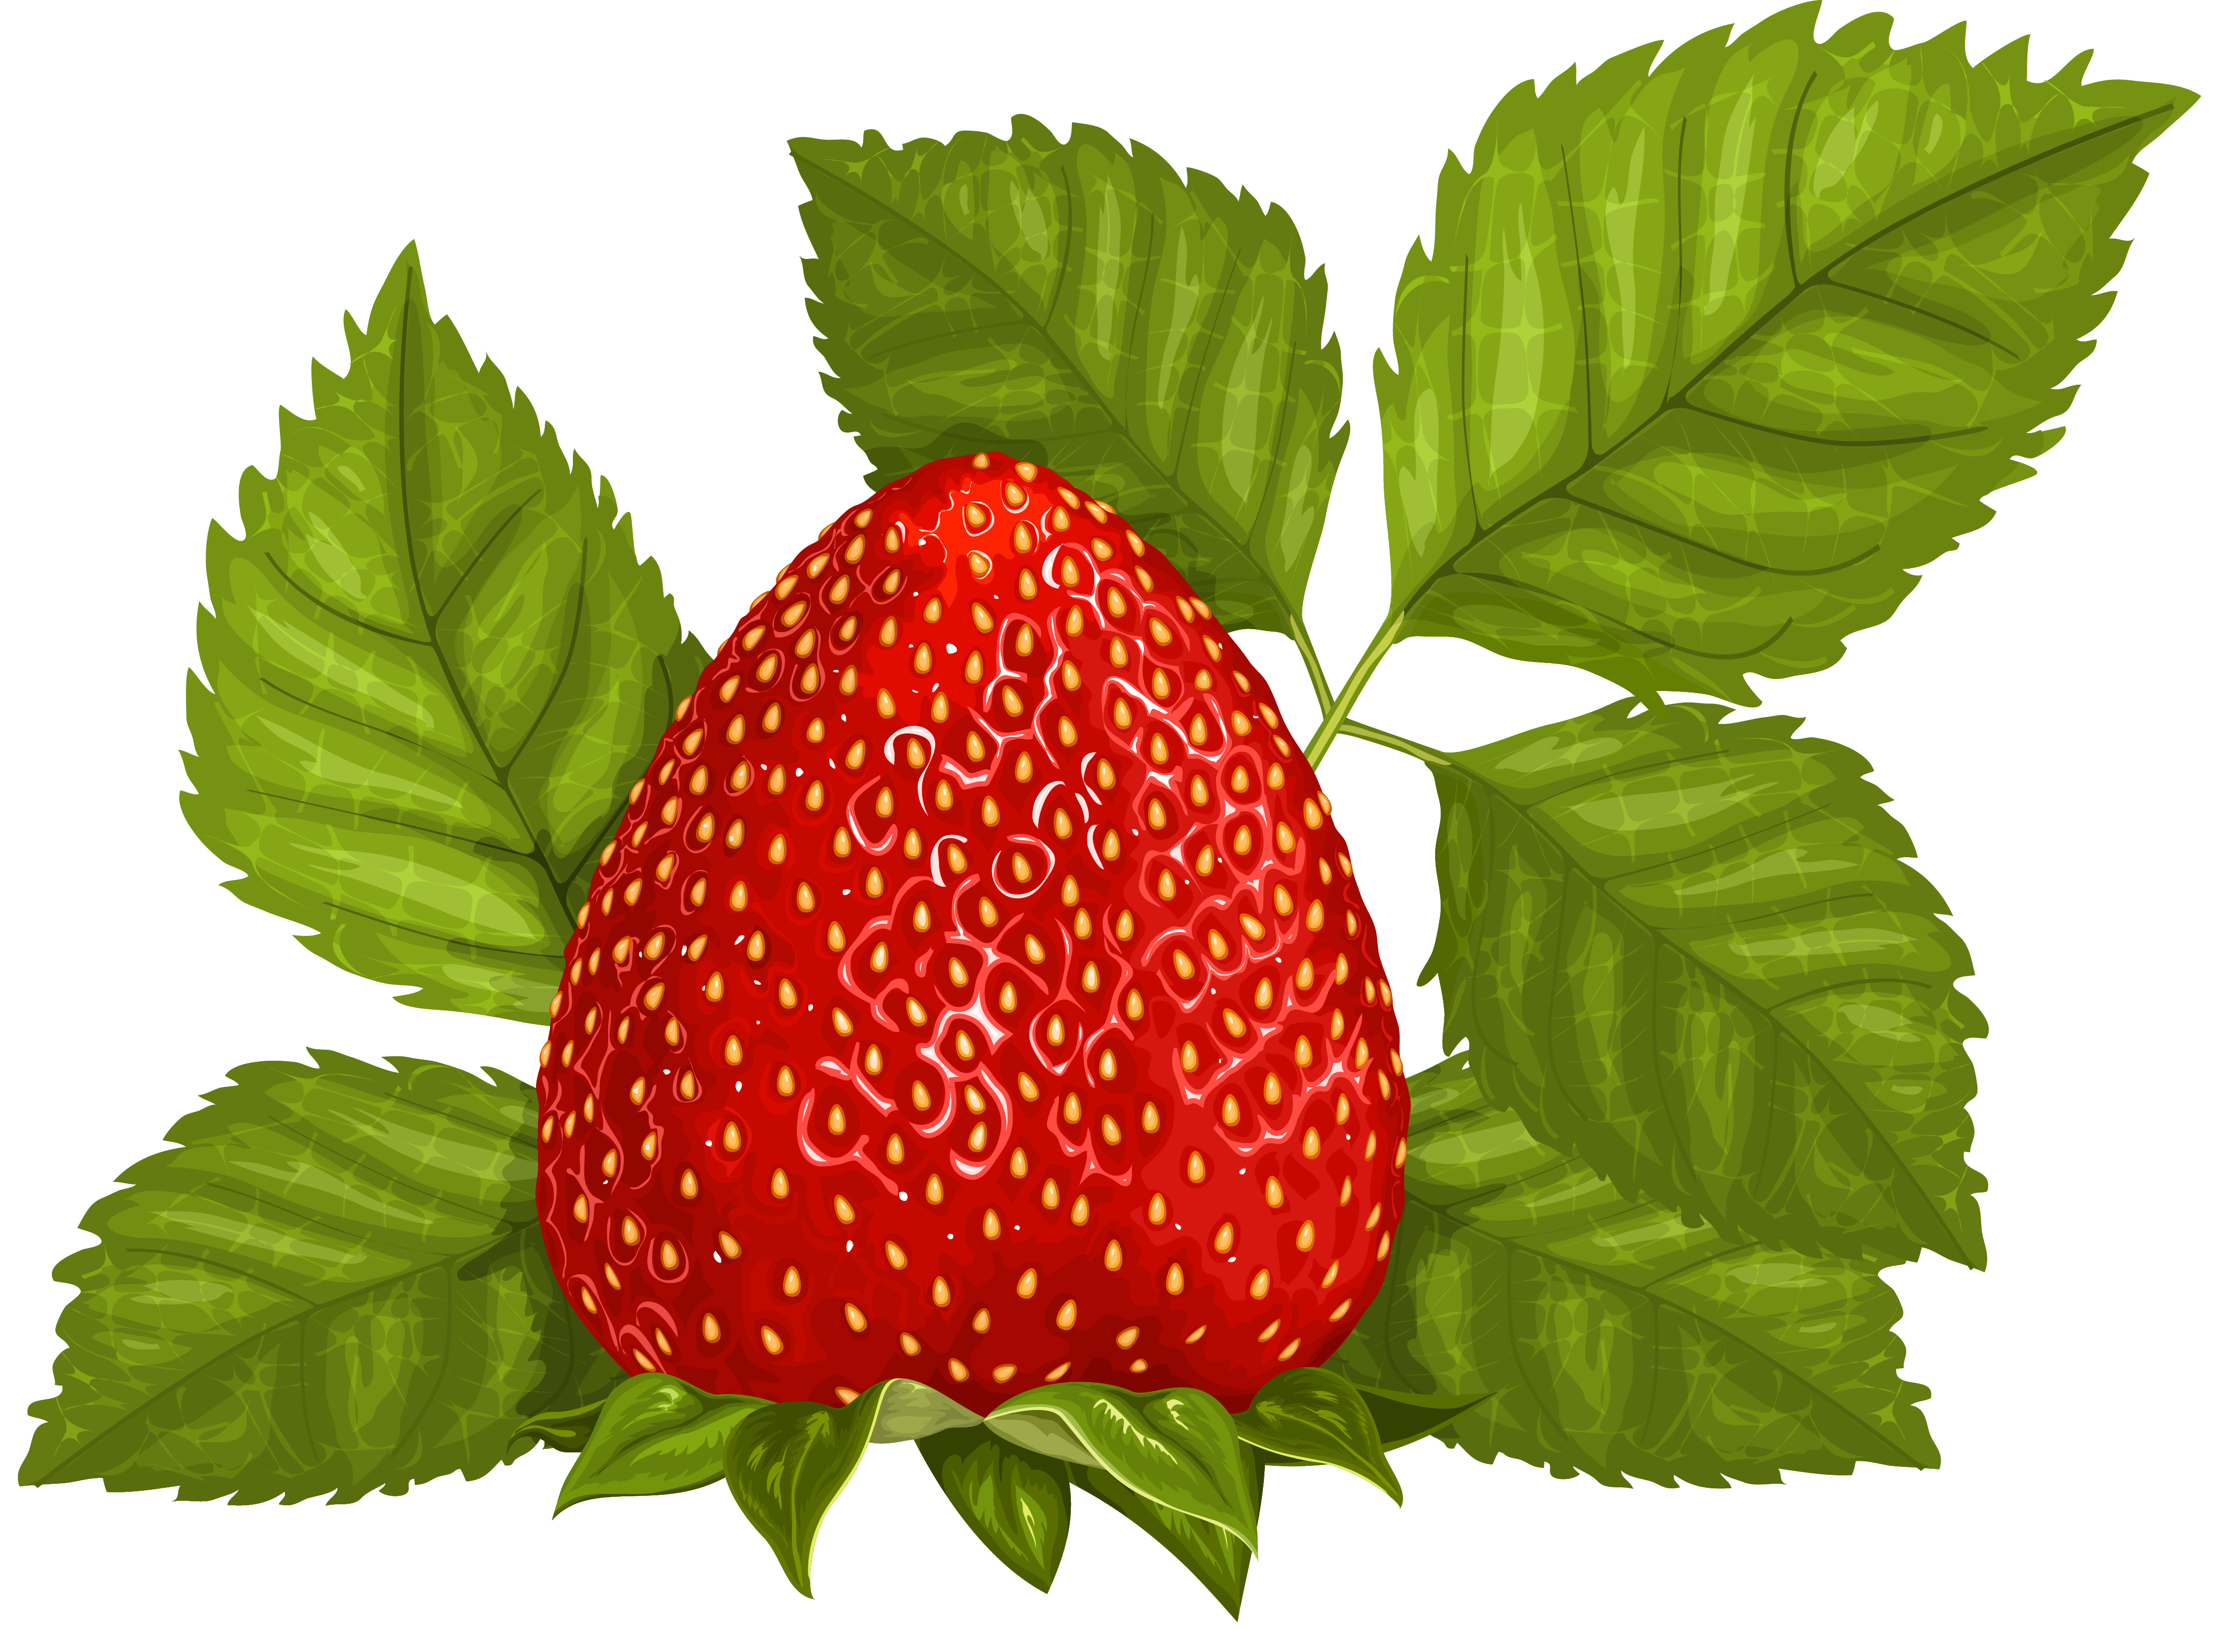 Strawberry with leaves png. Muffins clipart mom clipart